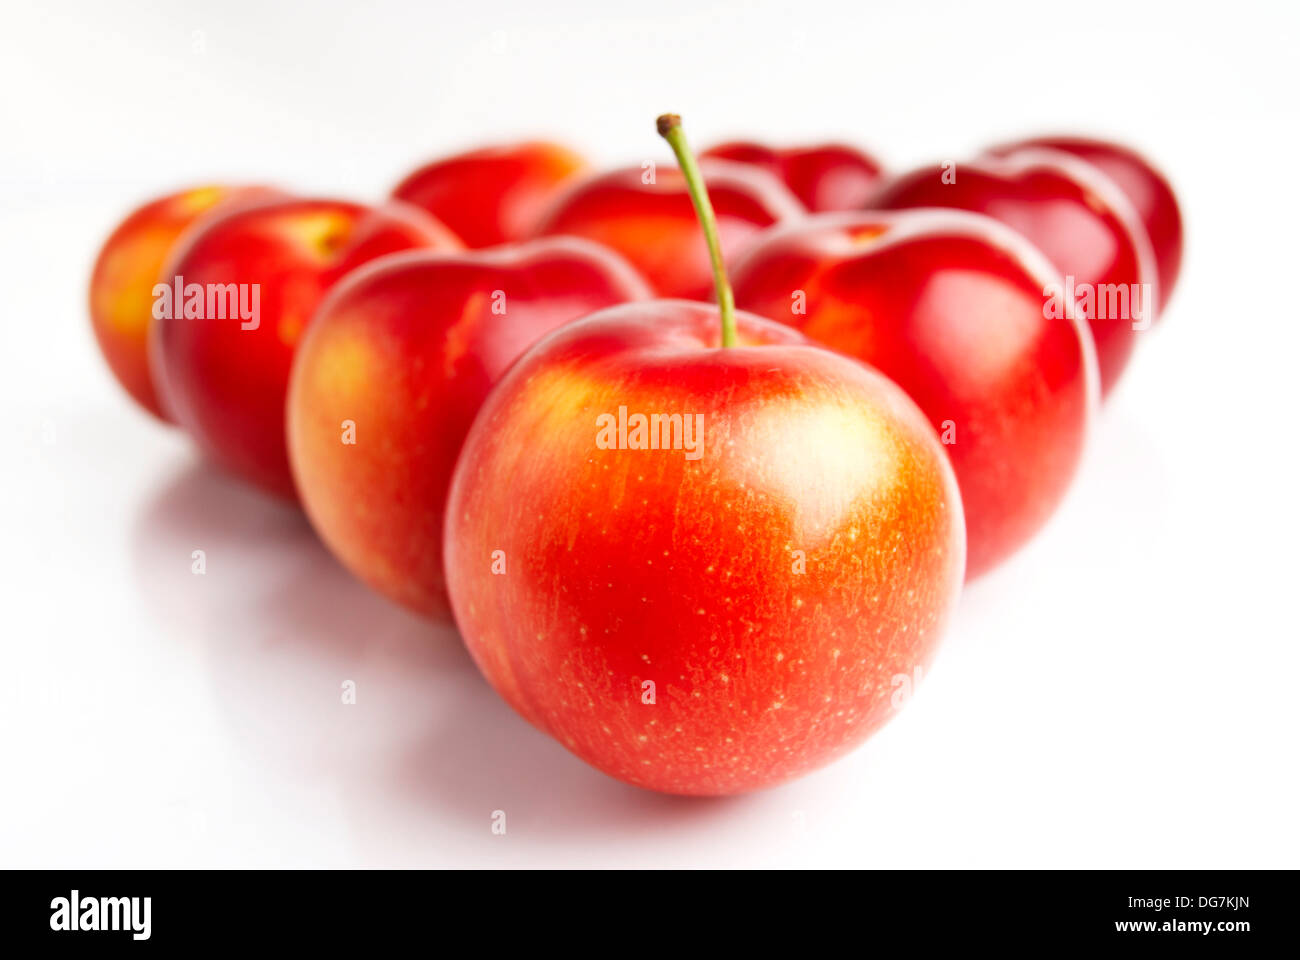 Plum Fruit Isolated Gourmet Purple Dietary Fiber Food Color Image Organic Nature Raw Season Food And Drink Concepts And Ideas - Stock Image